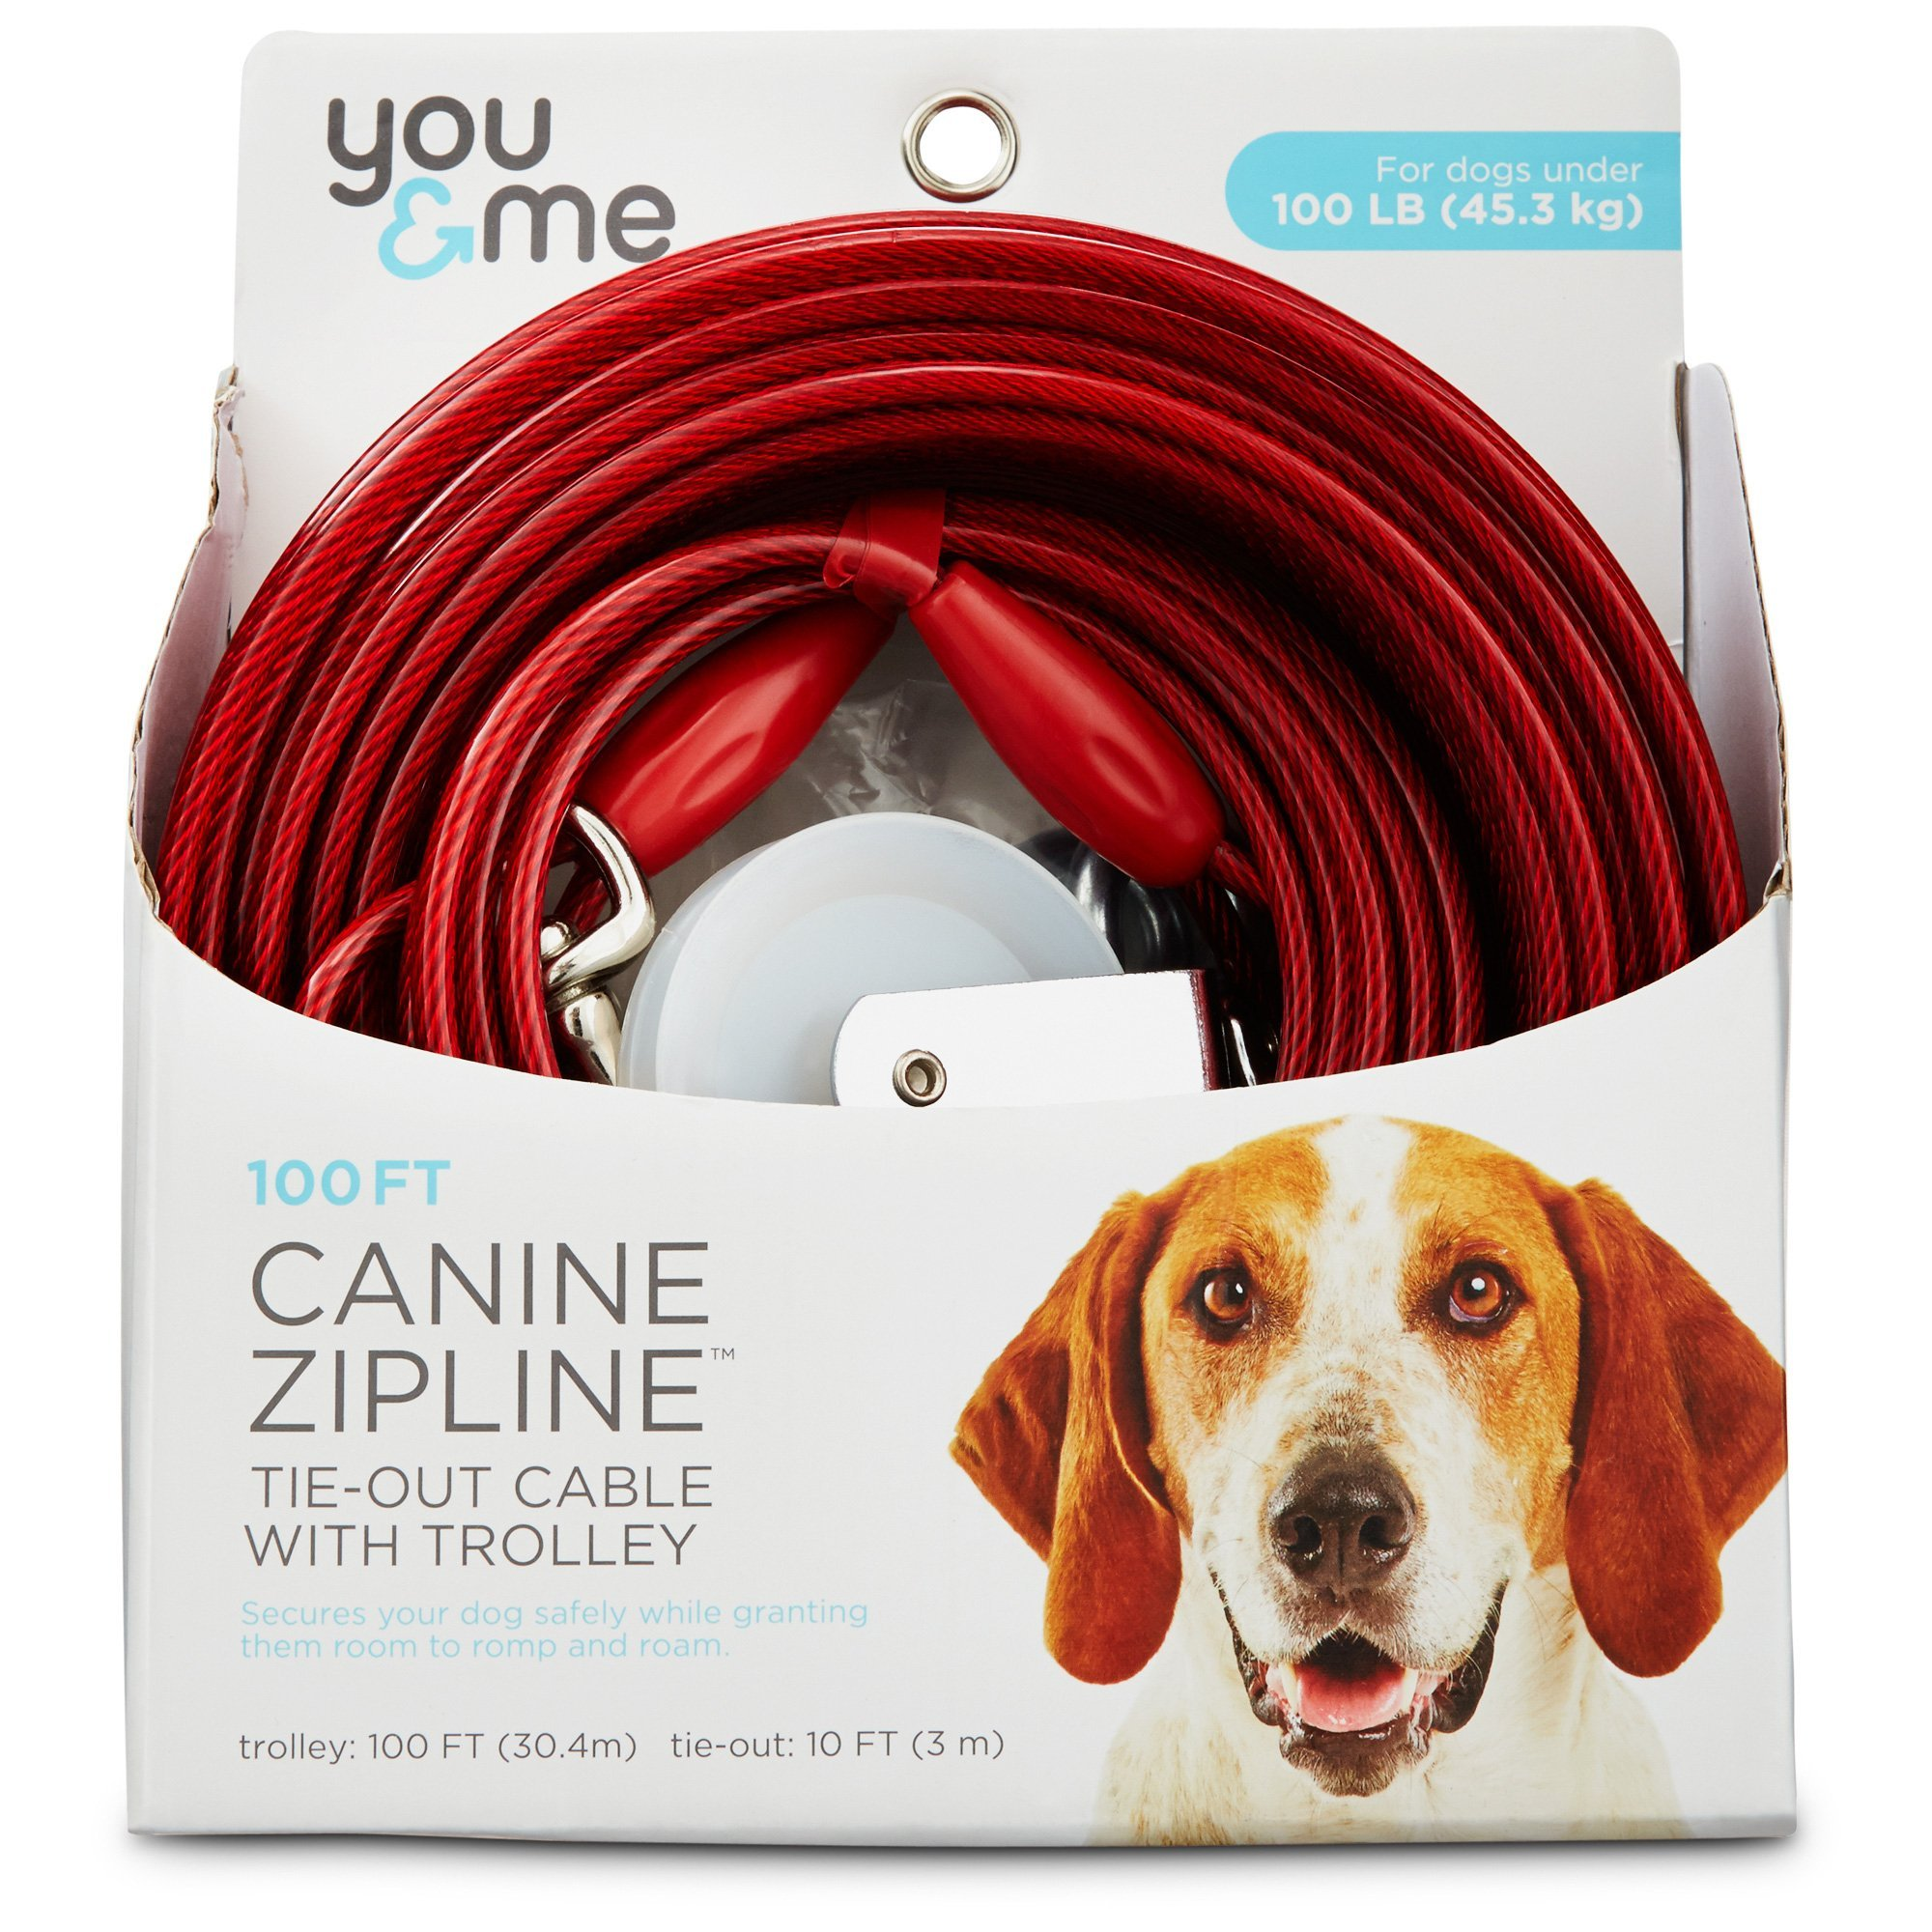 You & Me Red Large Canine Zipline Dog Tie-Out Cable with Trolley, 100' by You&Me